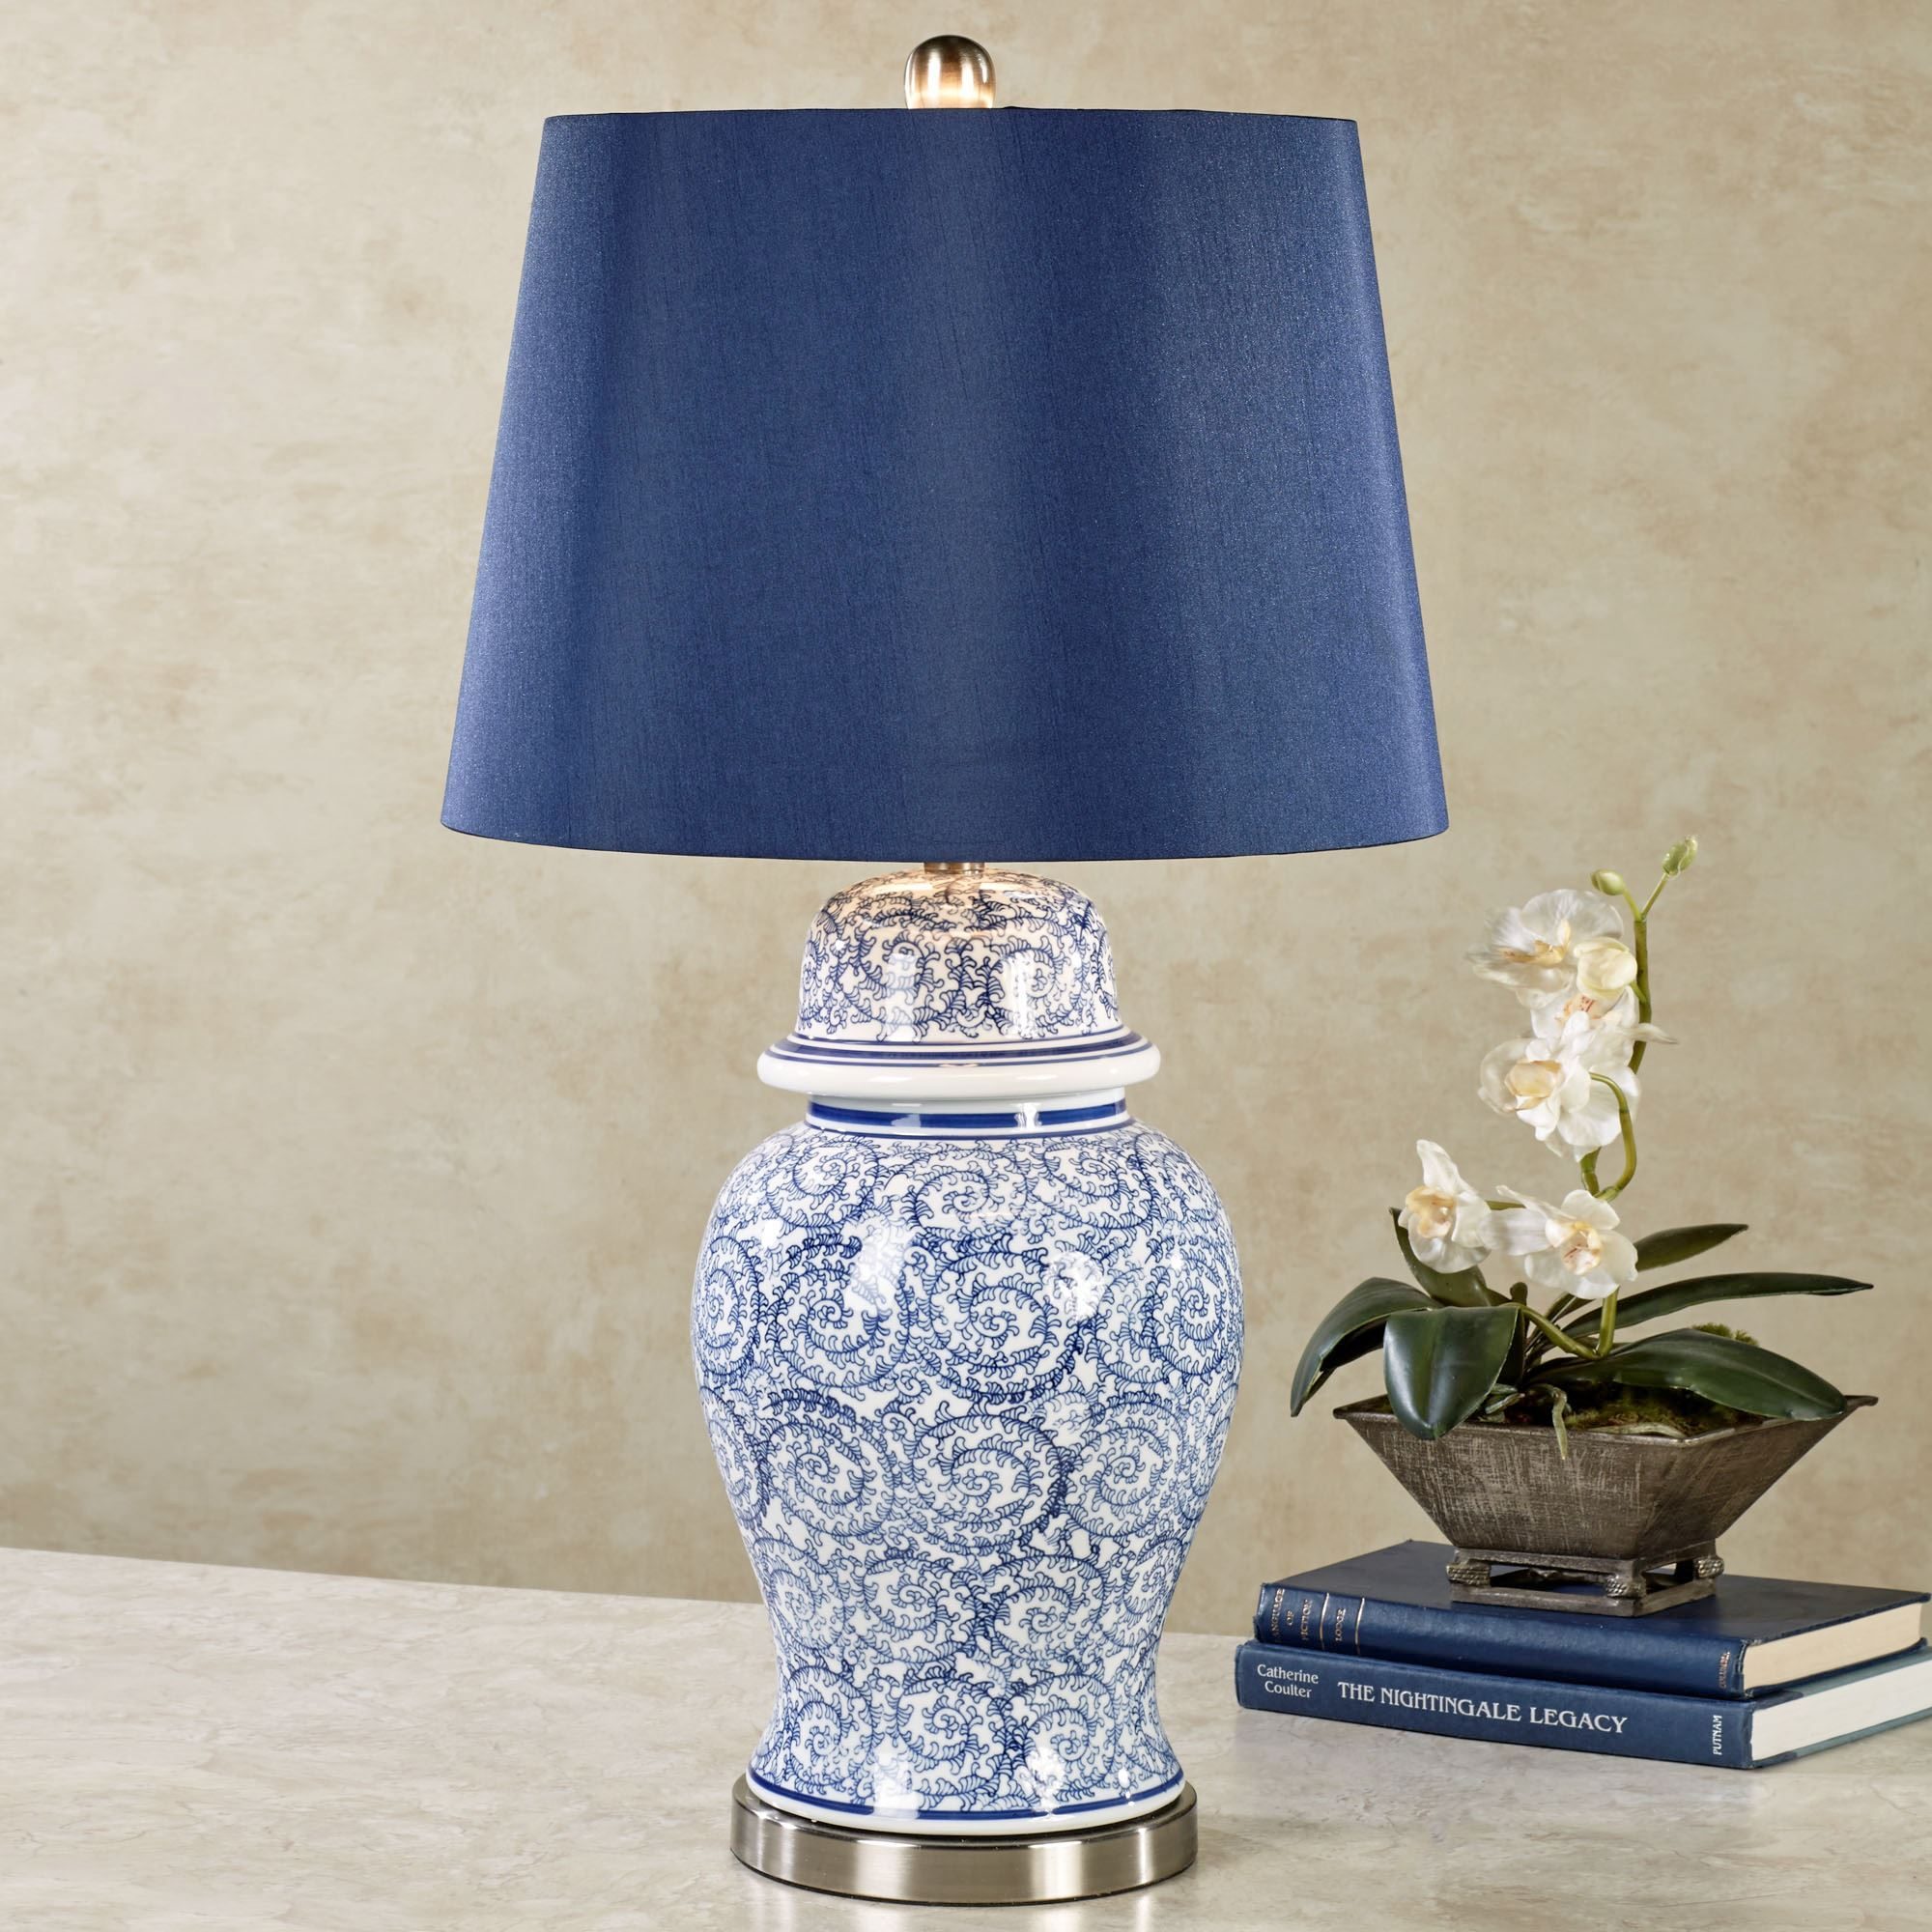 Shyama Blue Ceramic Table Lamp